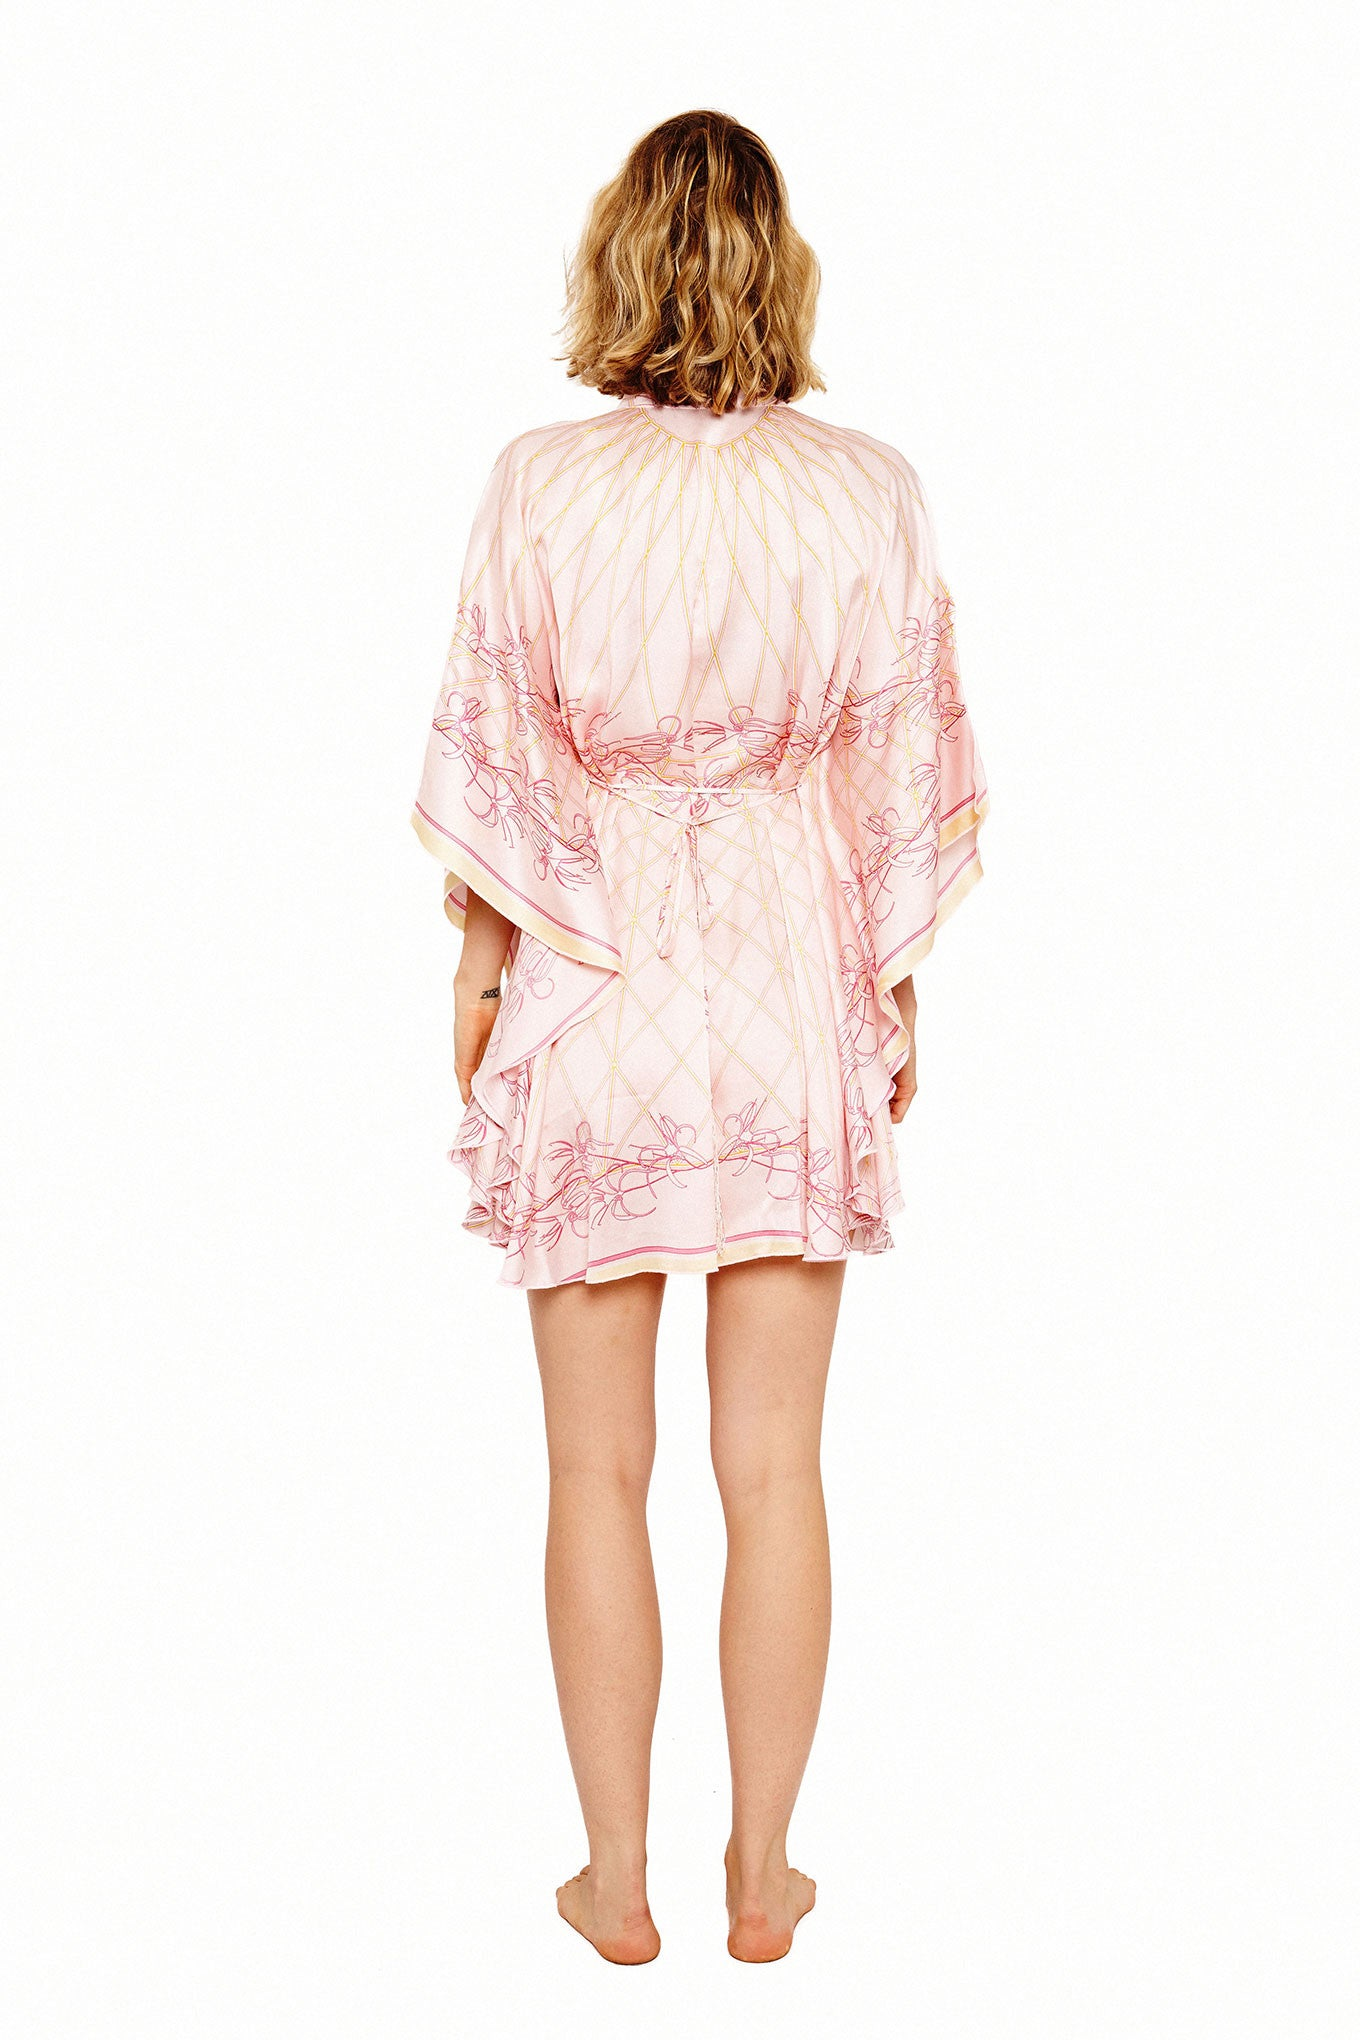 Lotty B Short Kaftan in Silk Crepe-de-Chine (Spiderlily Peach Pink) Back